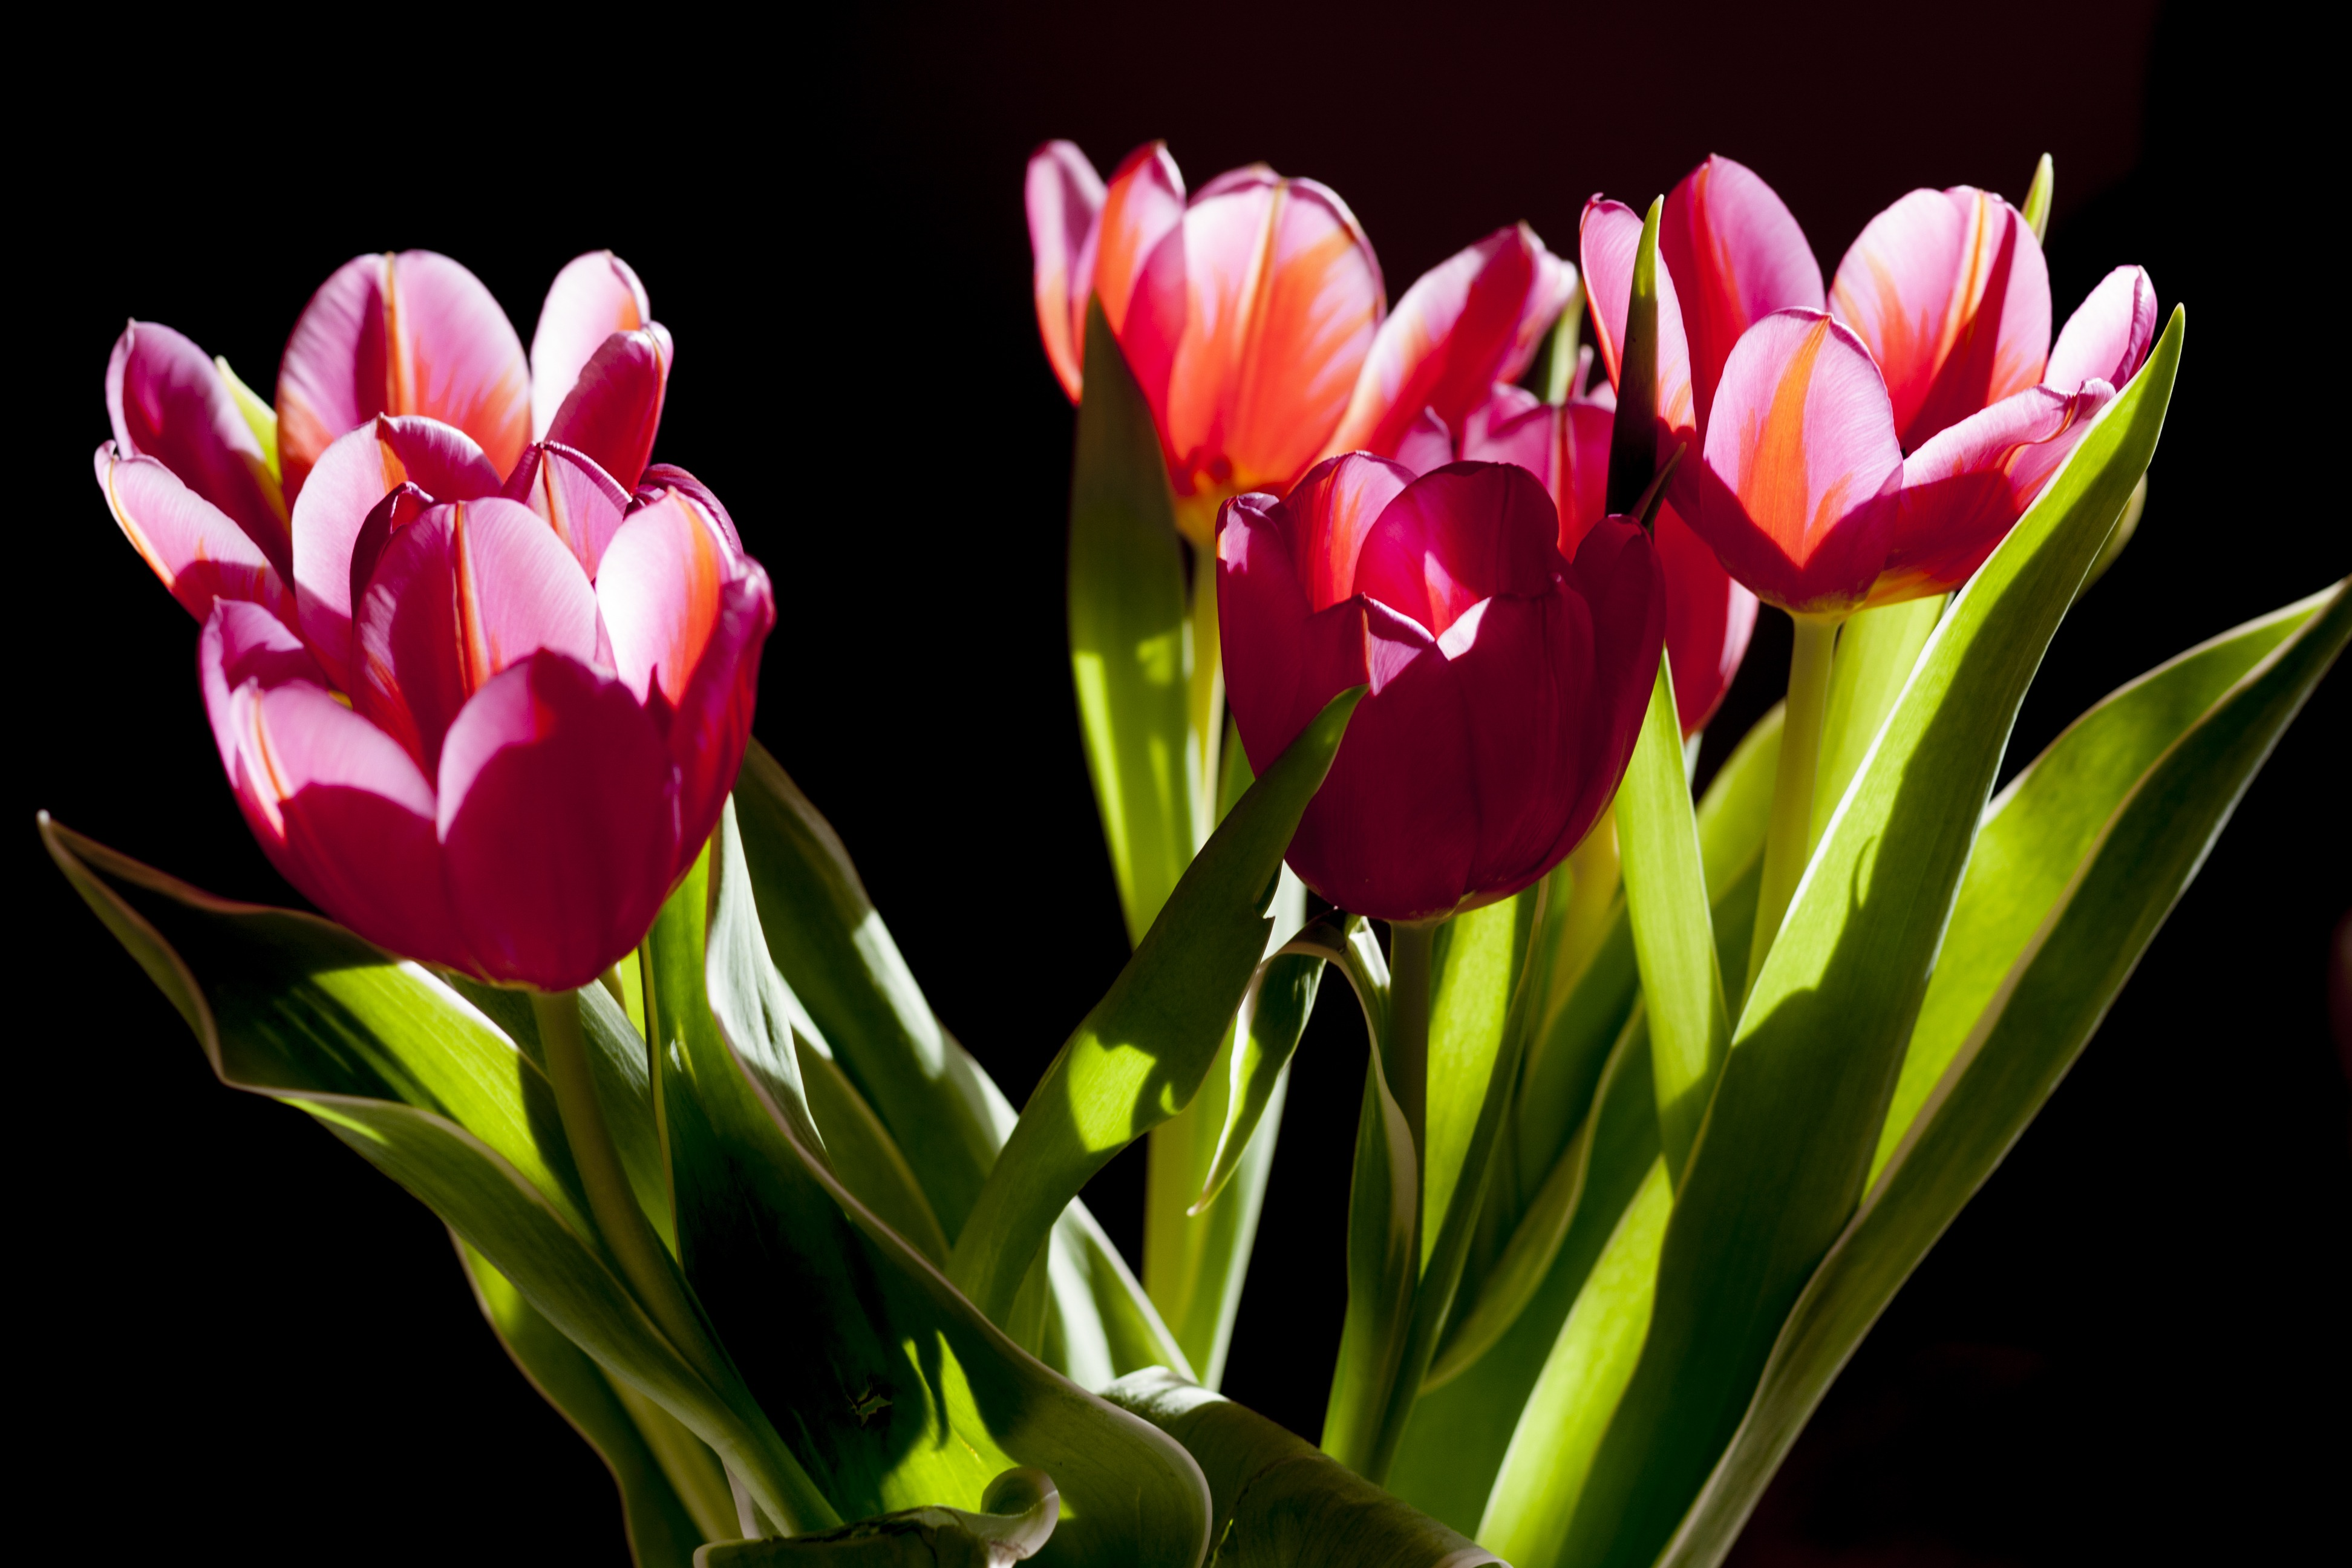 tulips-flowers-plant-beauty-59987